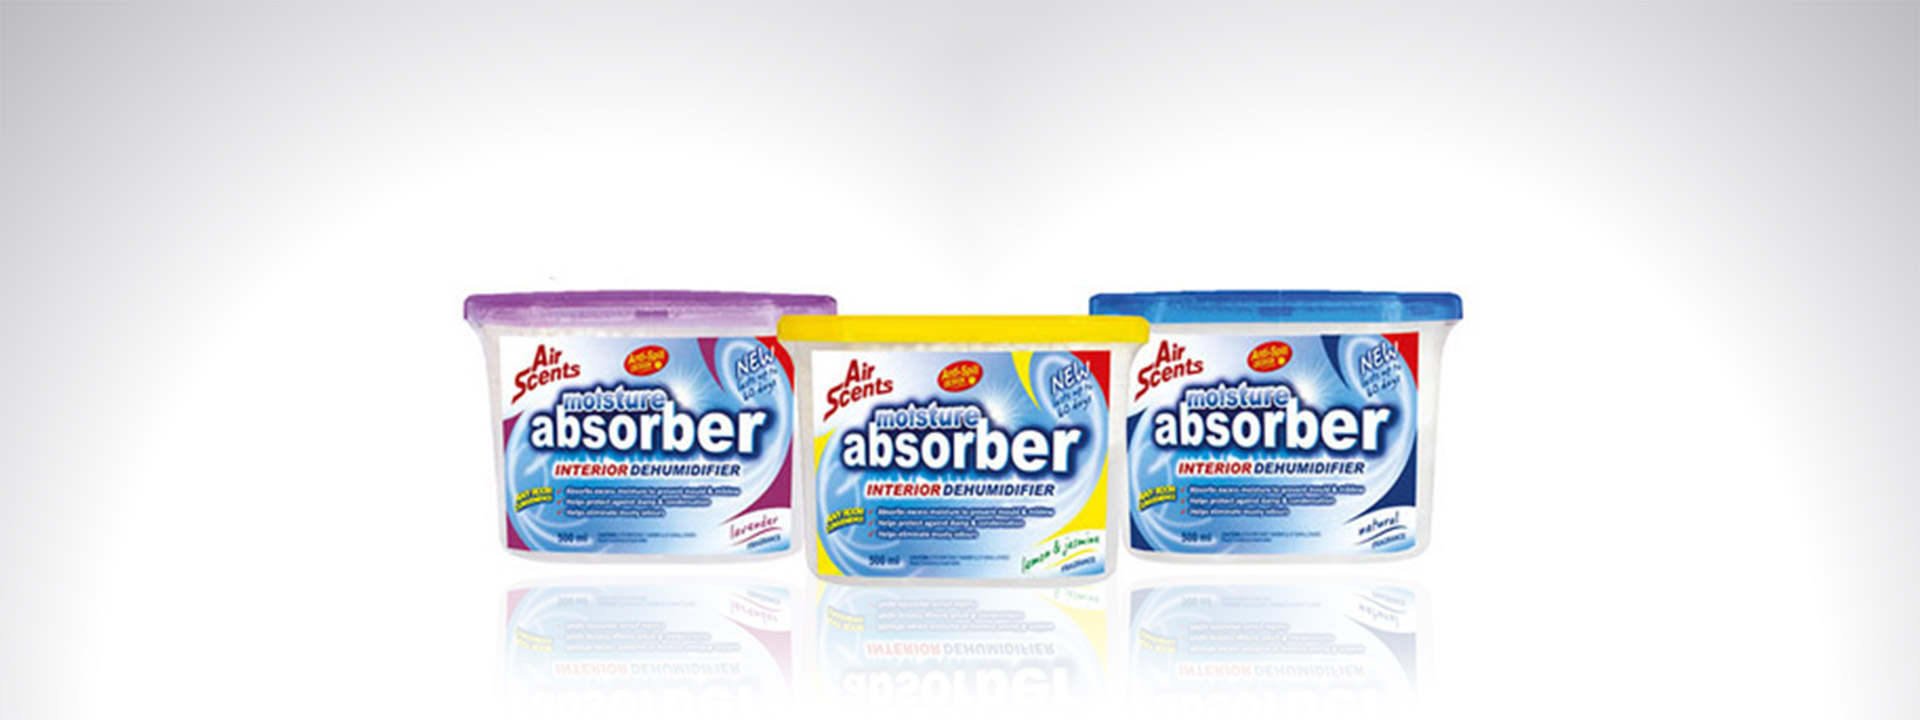 airscents-moisture-absorbers